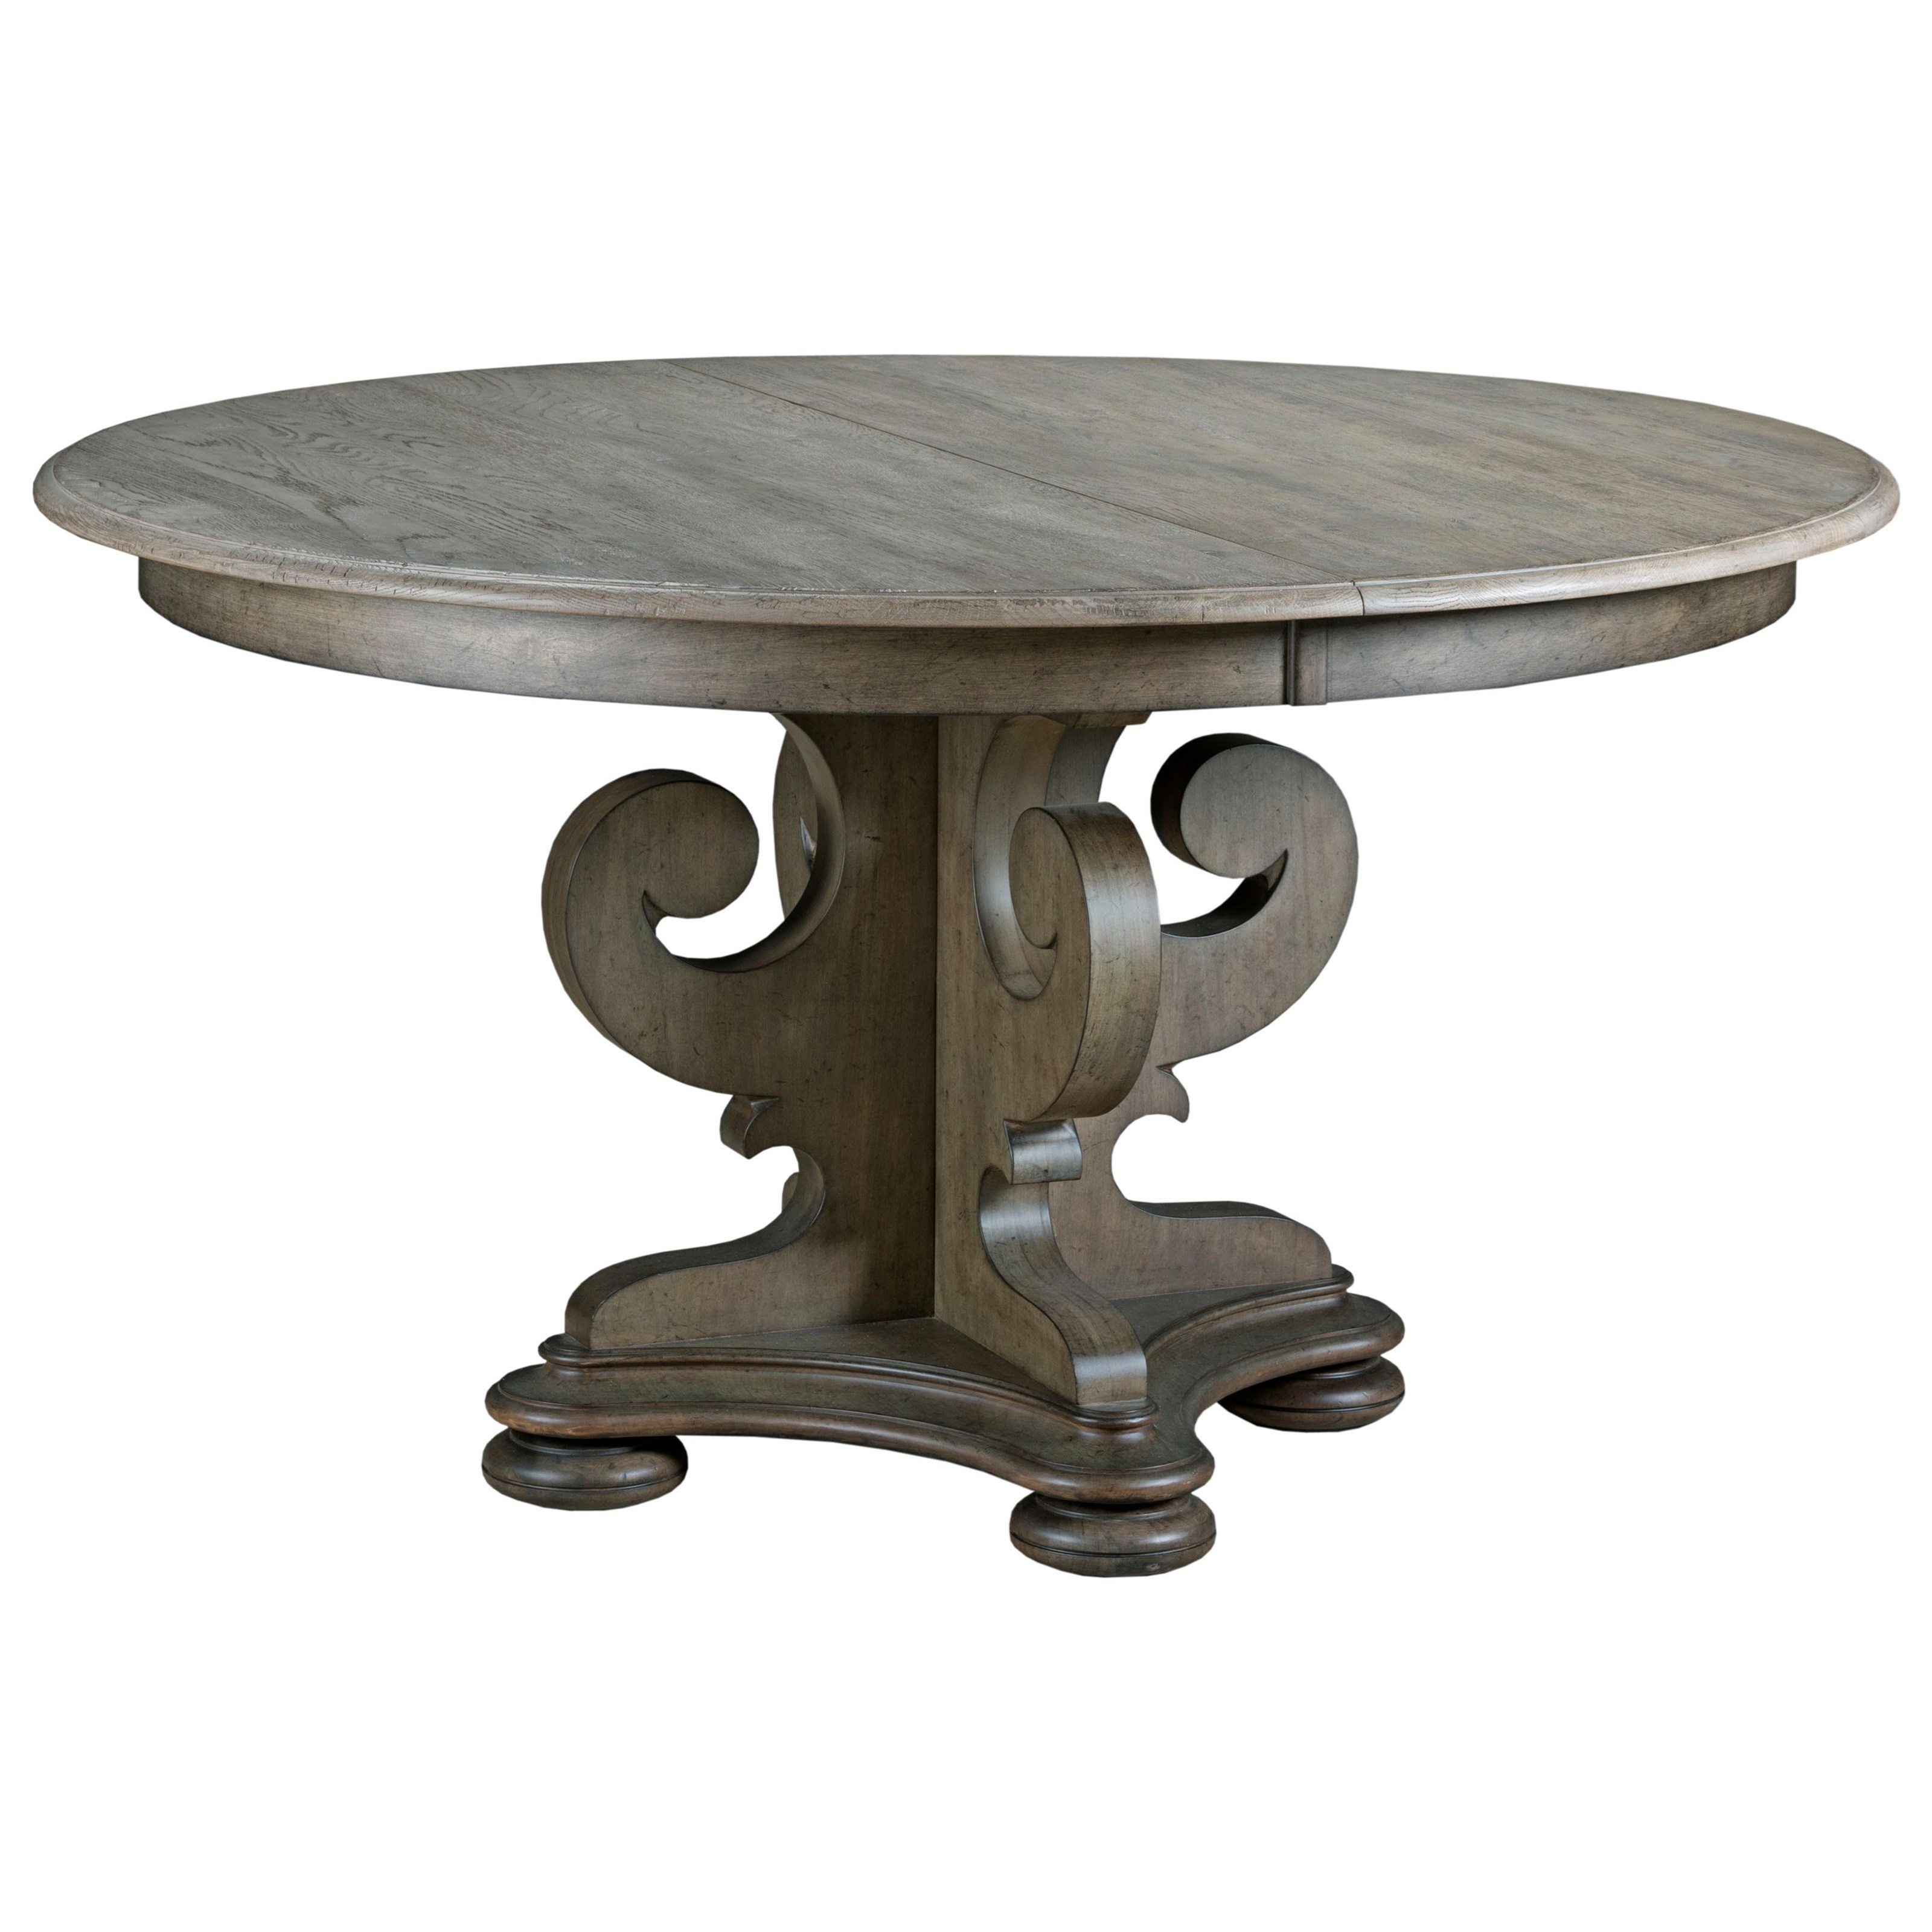 Kincaid furniture greyson 608 701p grant scrolled pedestal for Round extension dining table